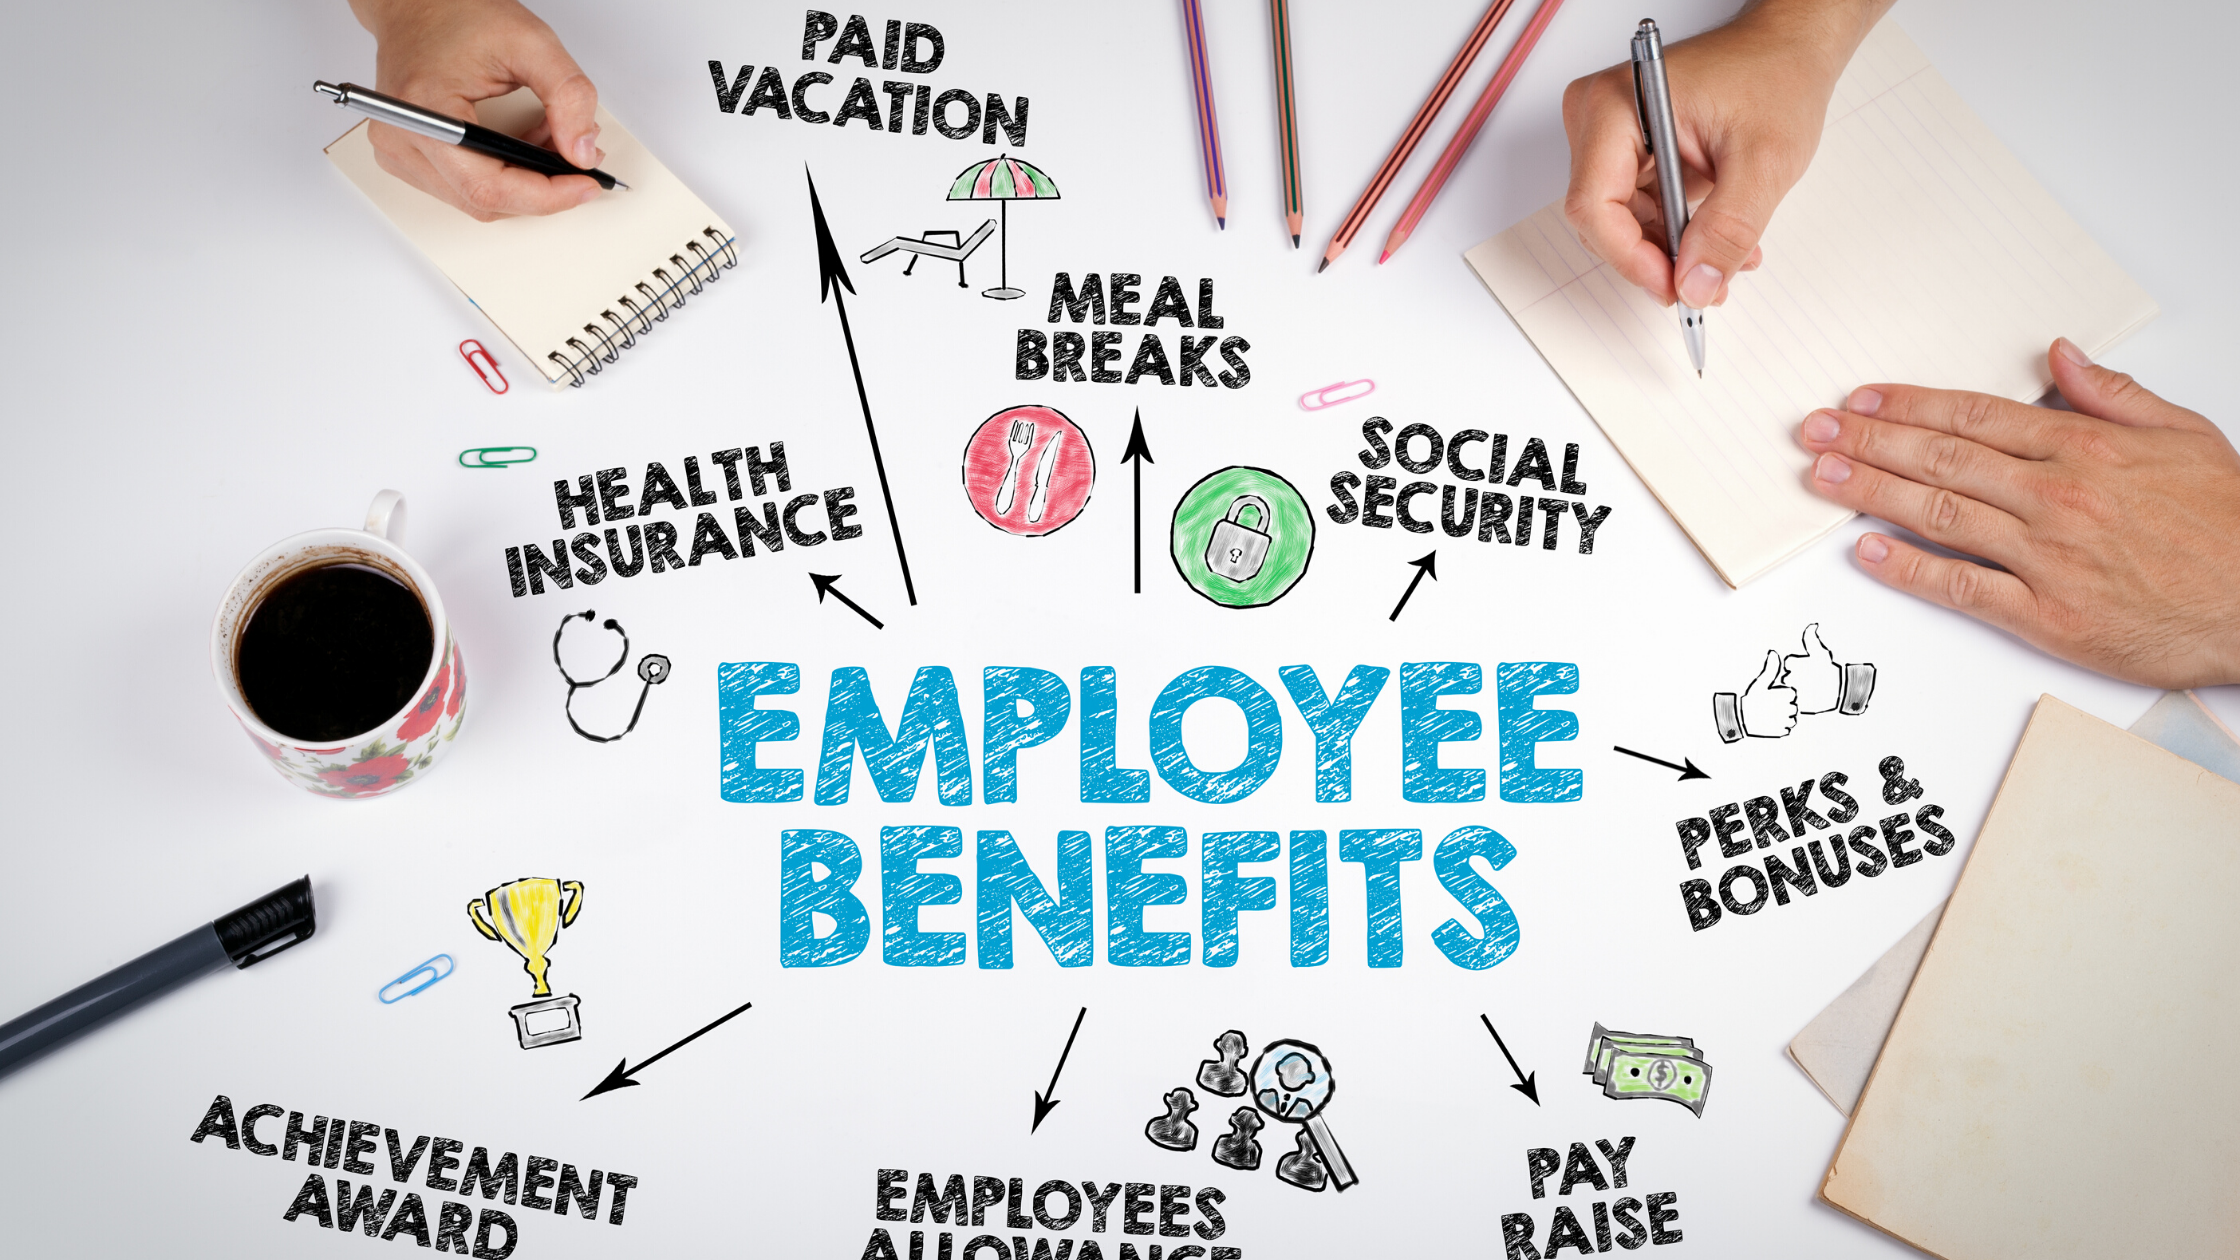 How Important Are Benefits to Your Employees?